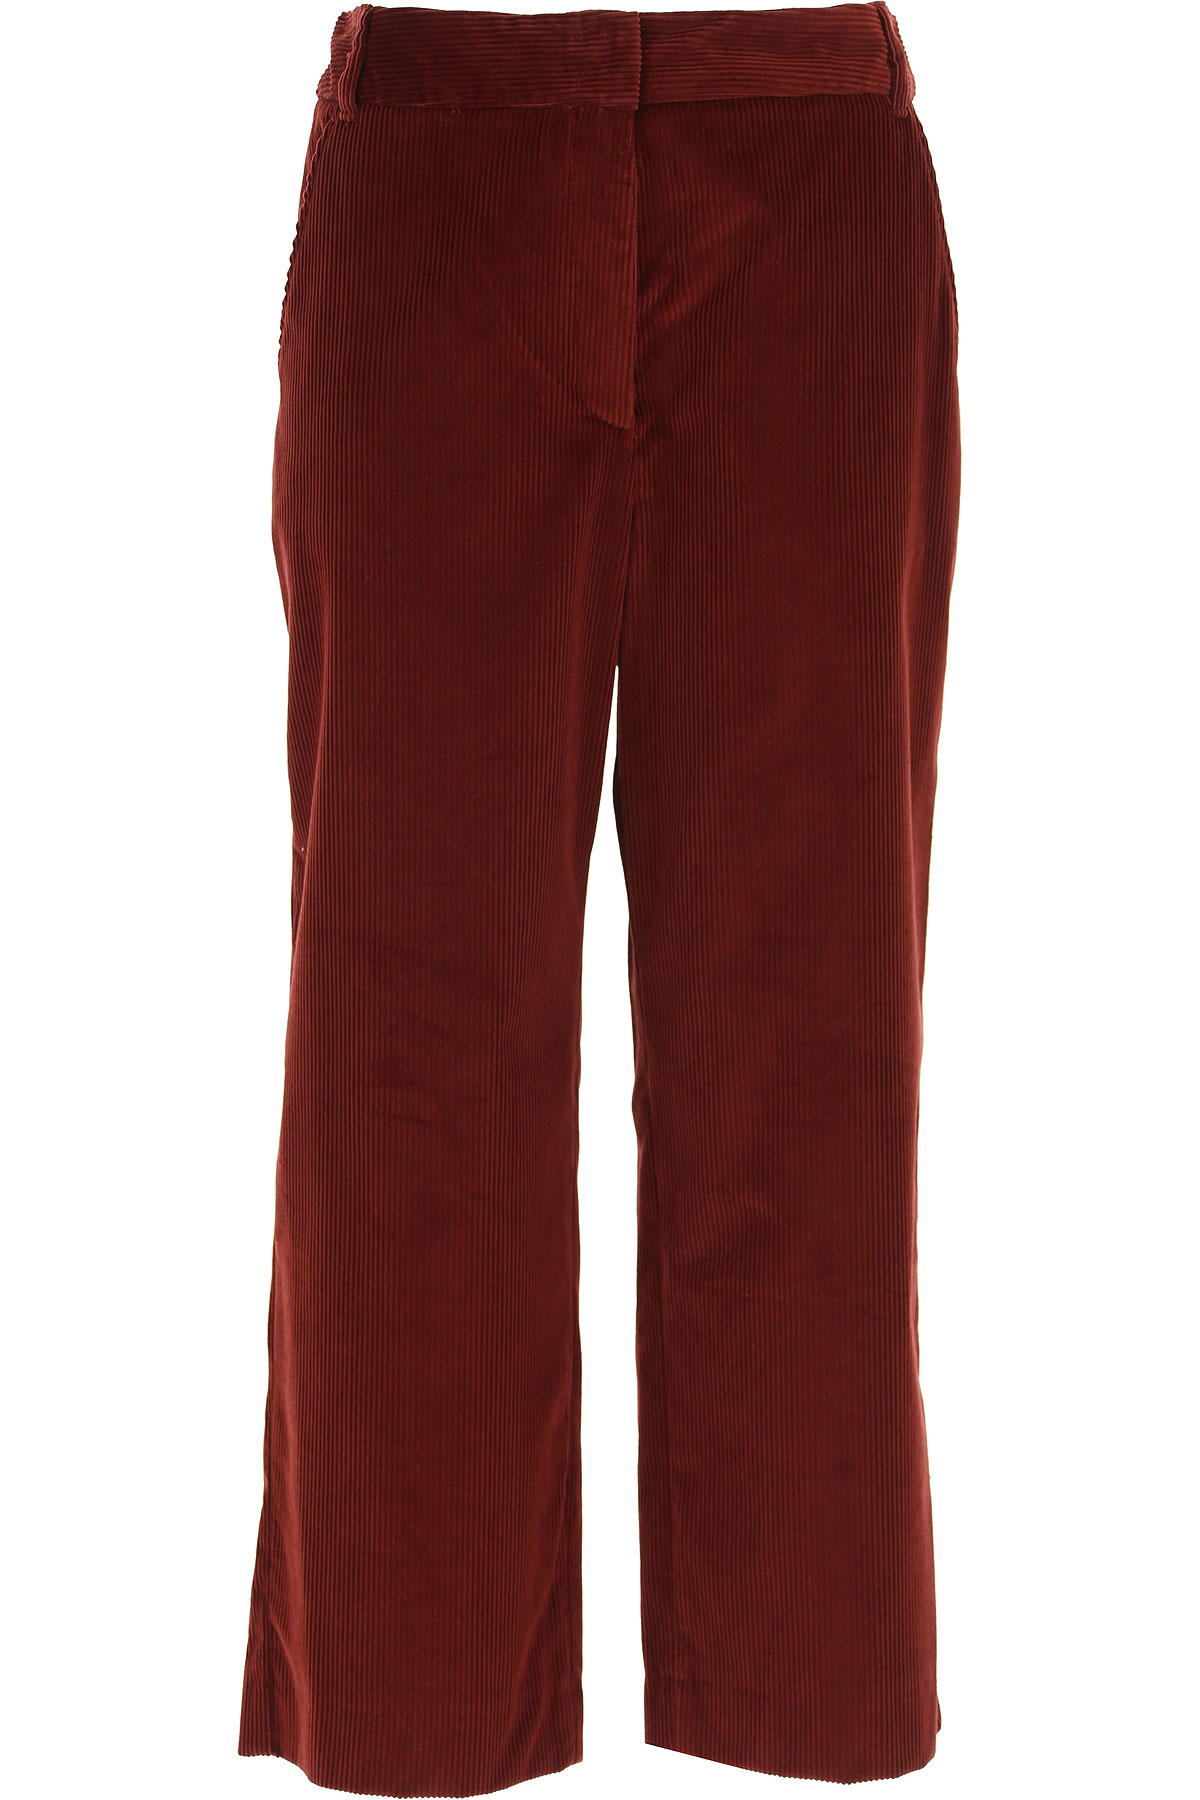 Image of Weekend by Max Mara Pants for Women, Bordeaux, Cotton, 2017, 28 30